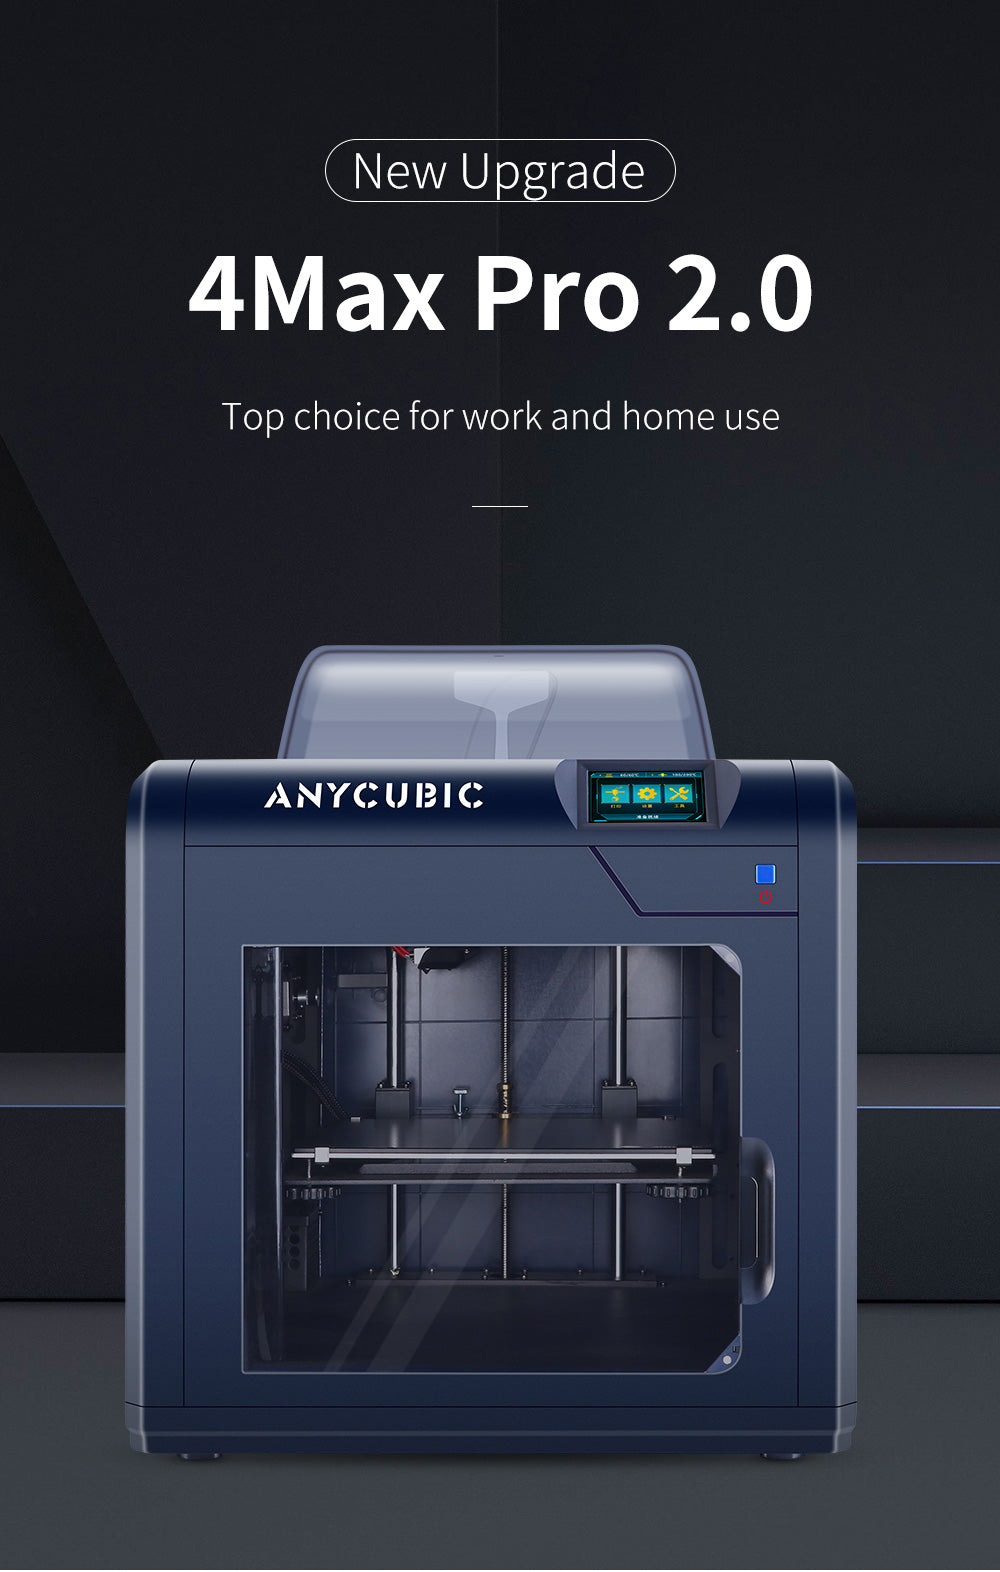 ANYCUBIC 4 Max Pro 2.0